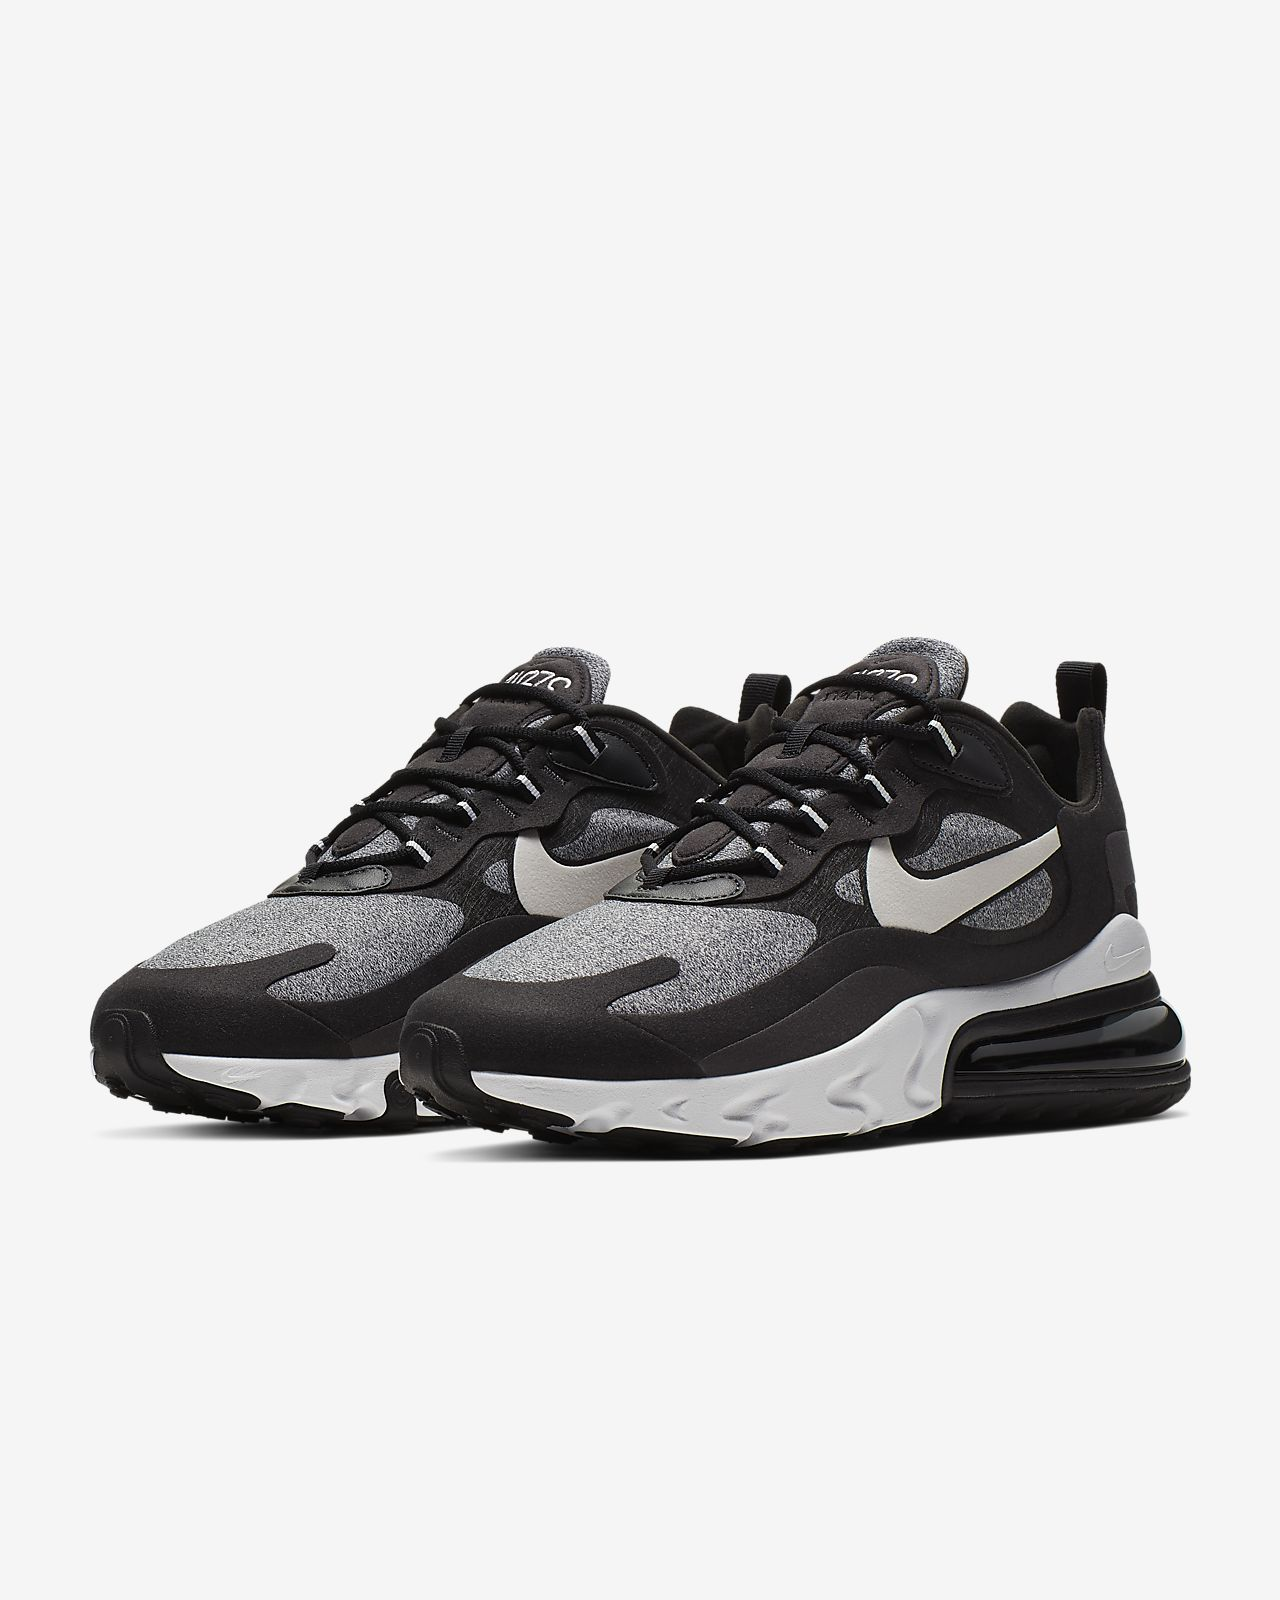 Chaussure Nike Air Max 270 React (Op Art) pour Homme